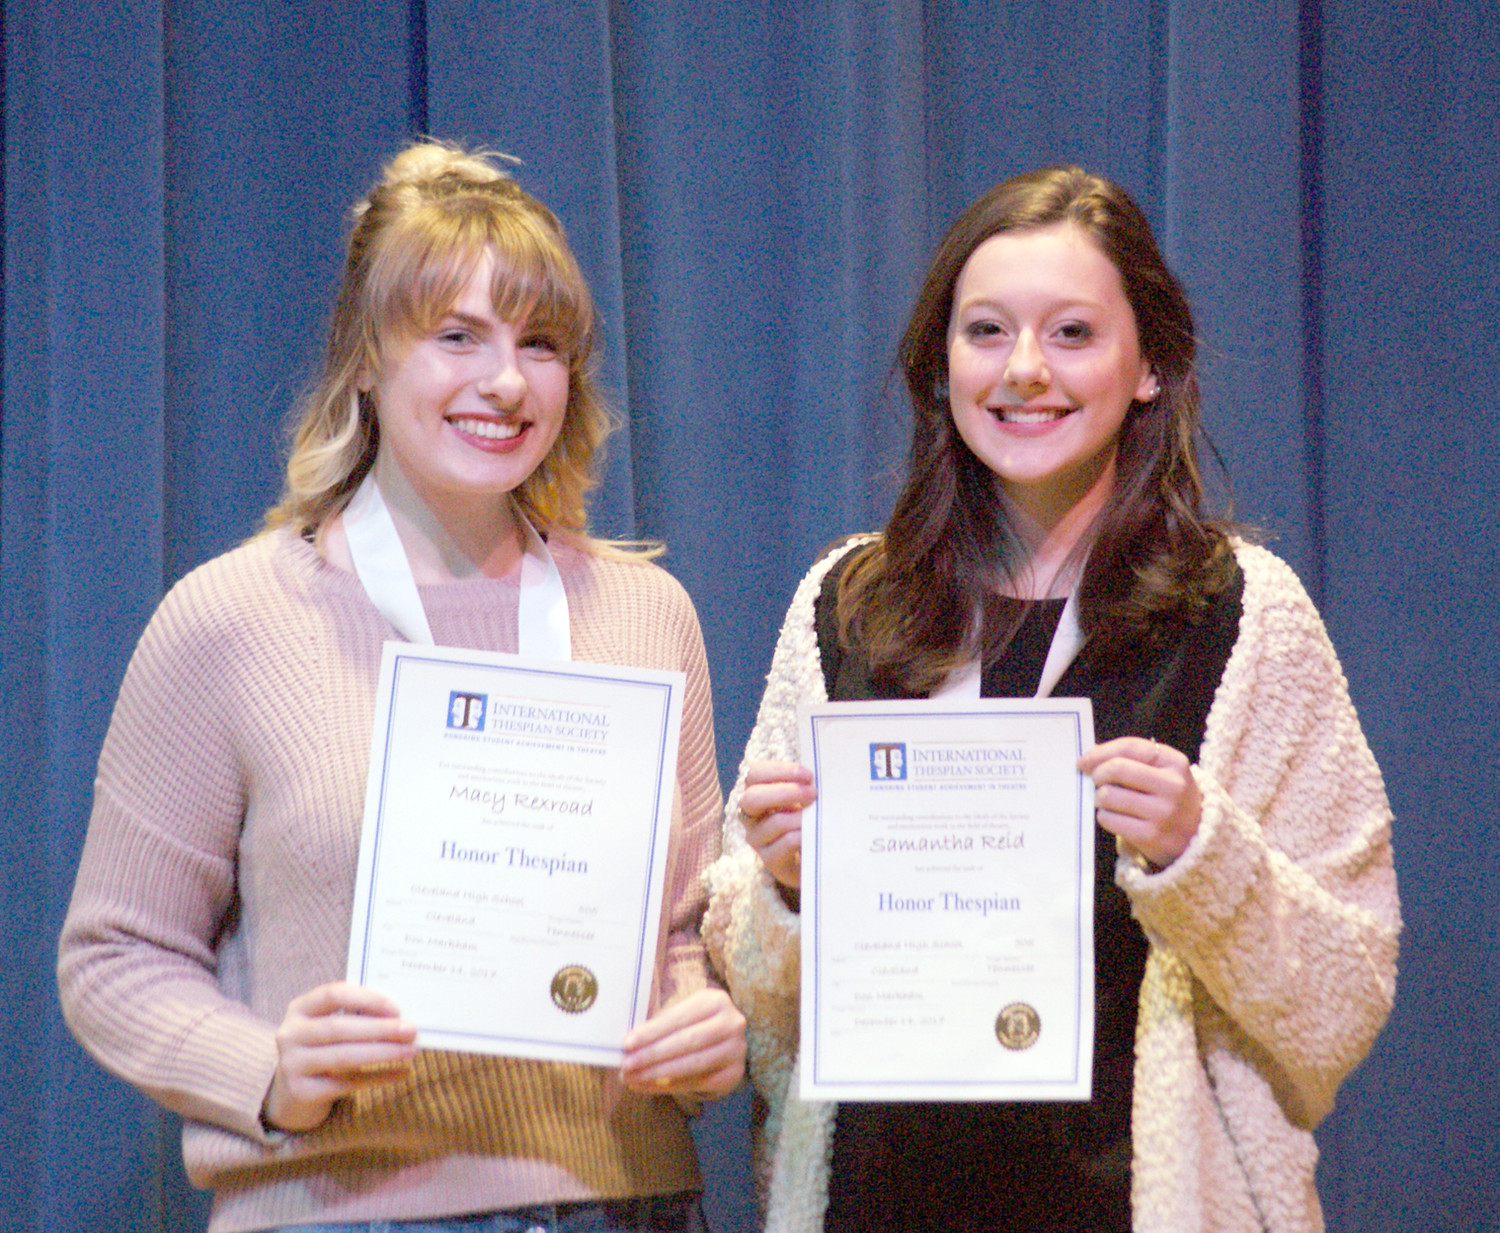 STUDENTS Macy Rexroad and Samantha Reid earned Honor Thespian Status by completing 600 hours in theater work. They were honored during Cleveland High School International Thespian Troupe 505's recent induction ceremony. The troupe is under the direction of Don Markham, with current officers Lindsay Markham, president, Macy Rexroad, vice president, and Renee McCollum, secretary.